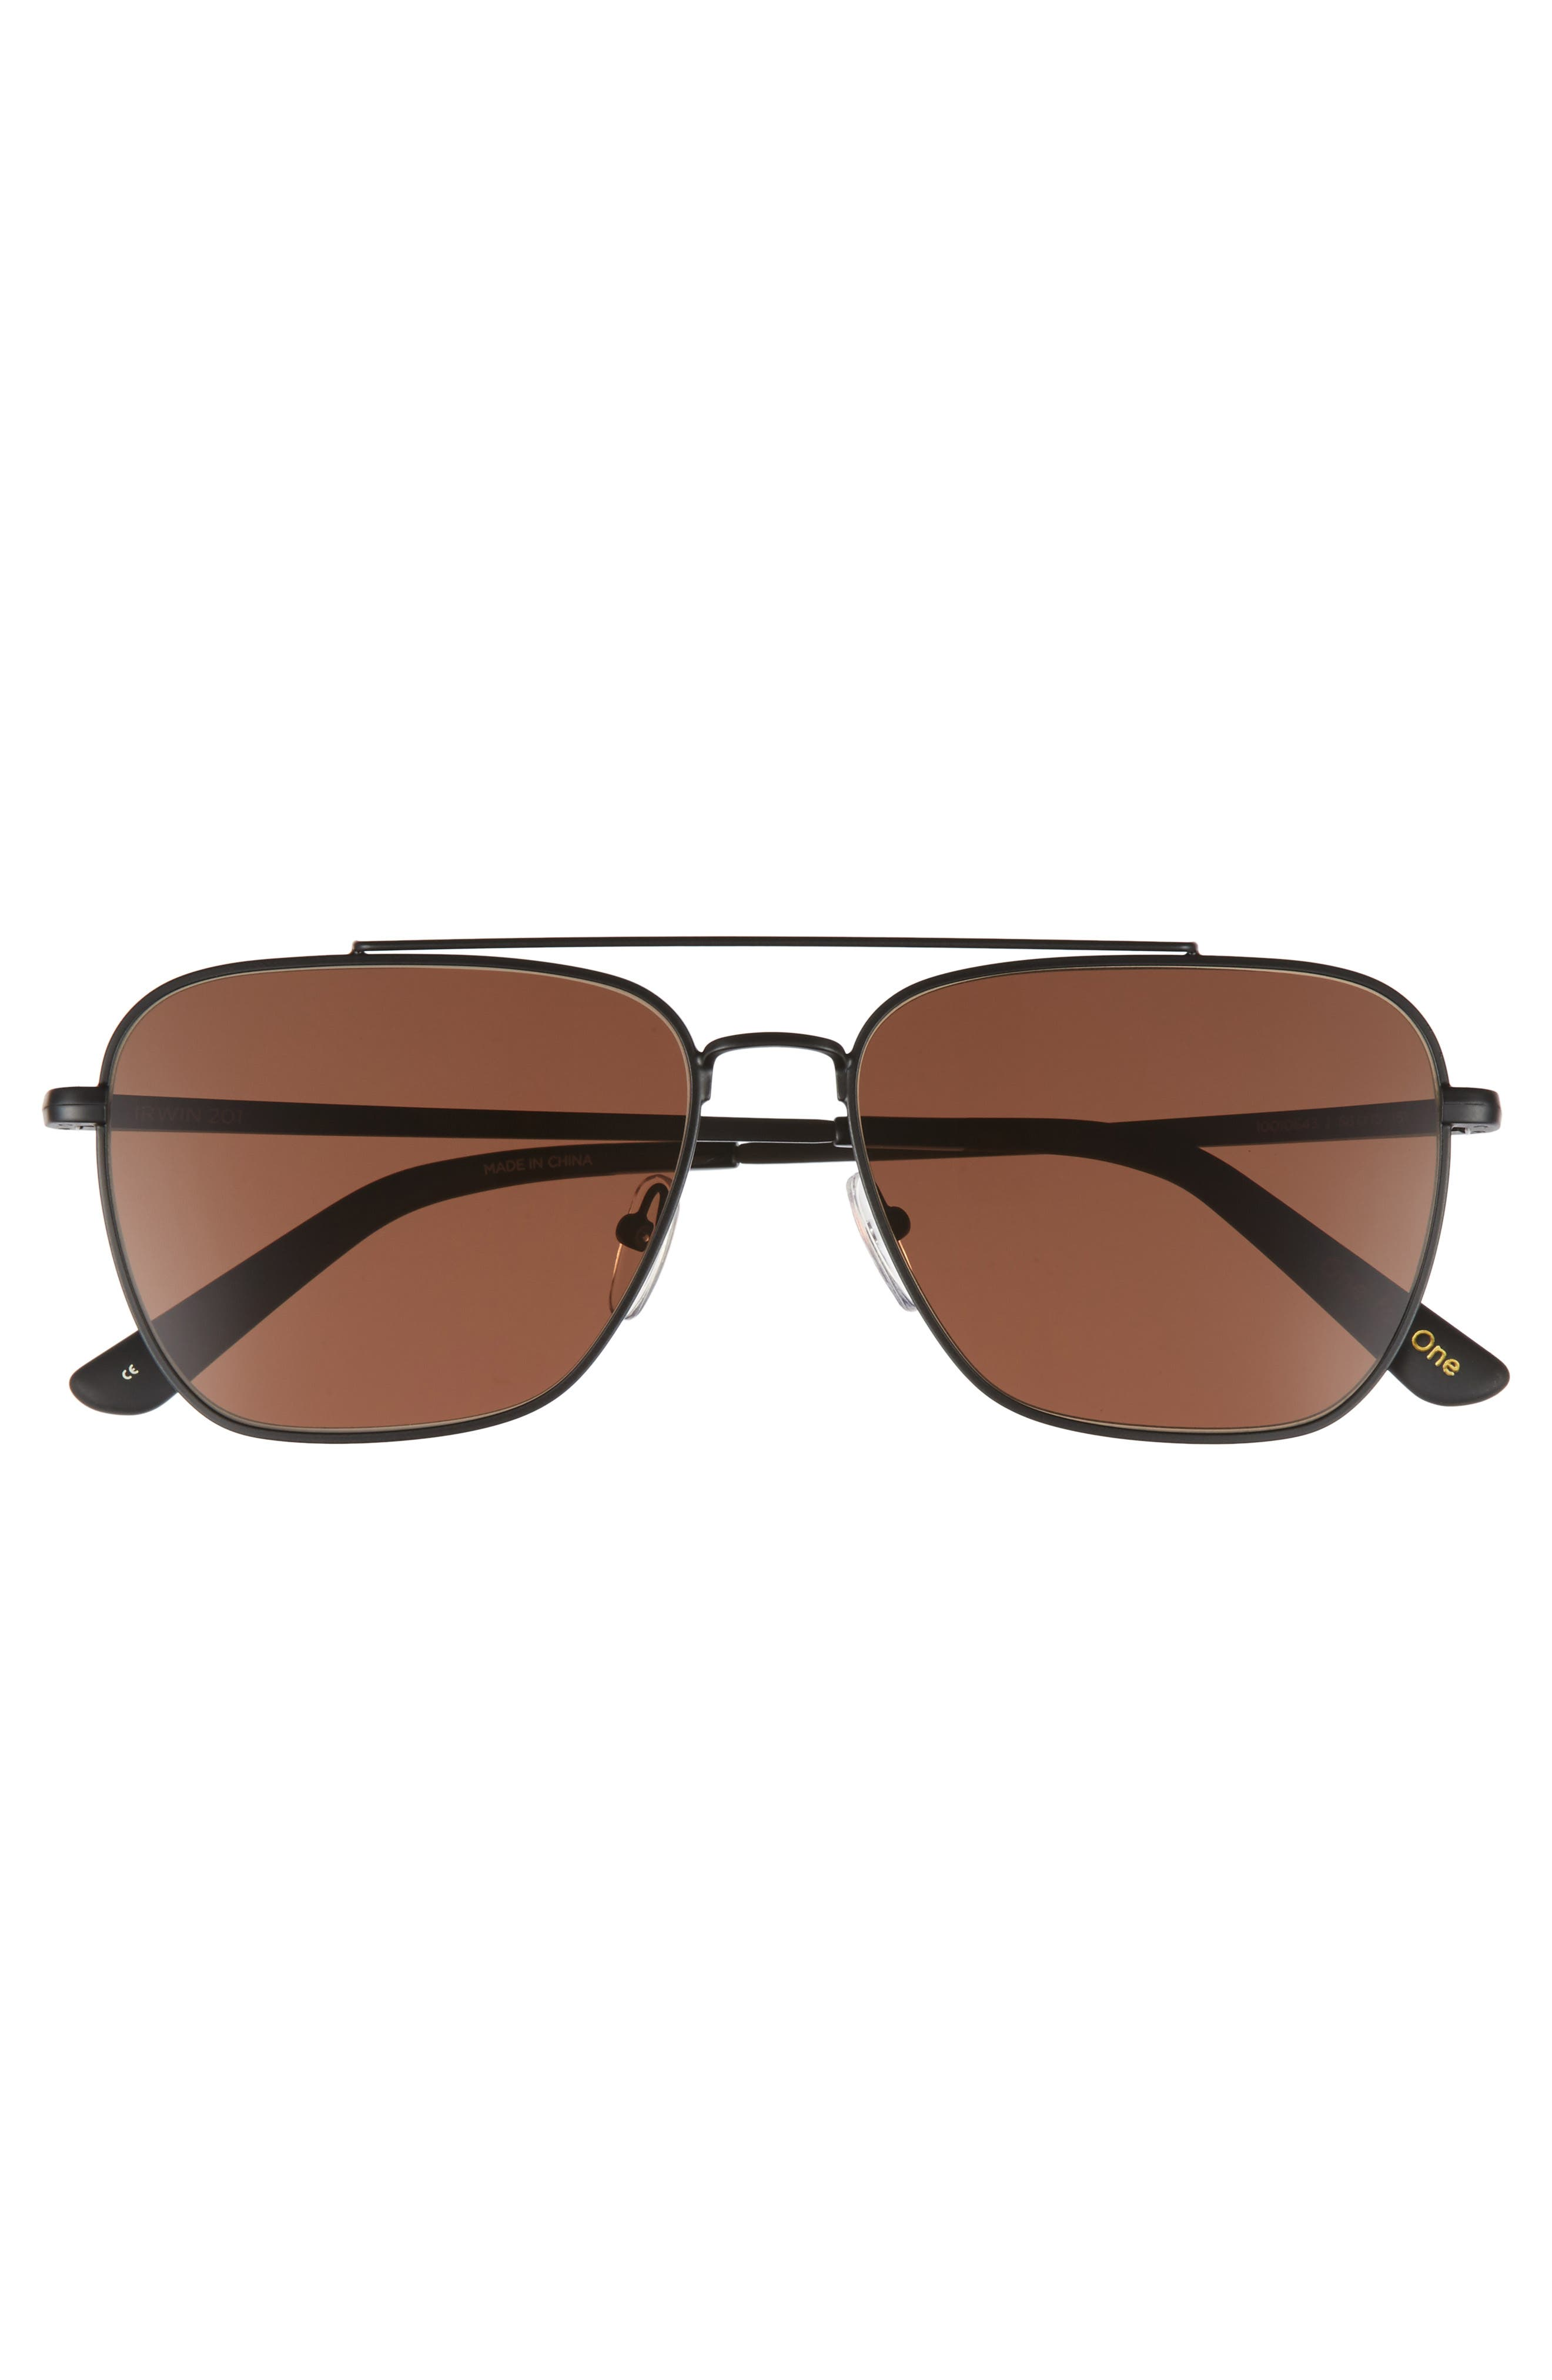 Irwin 58mm Sunglasses,                             Alternate thumbnail 2, color,                             001